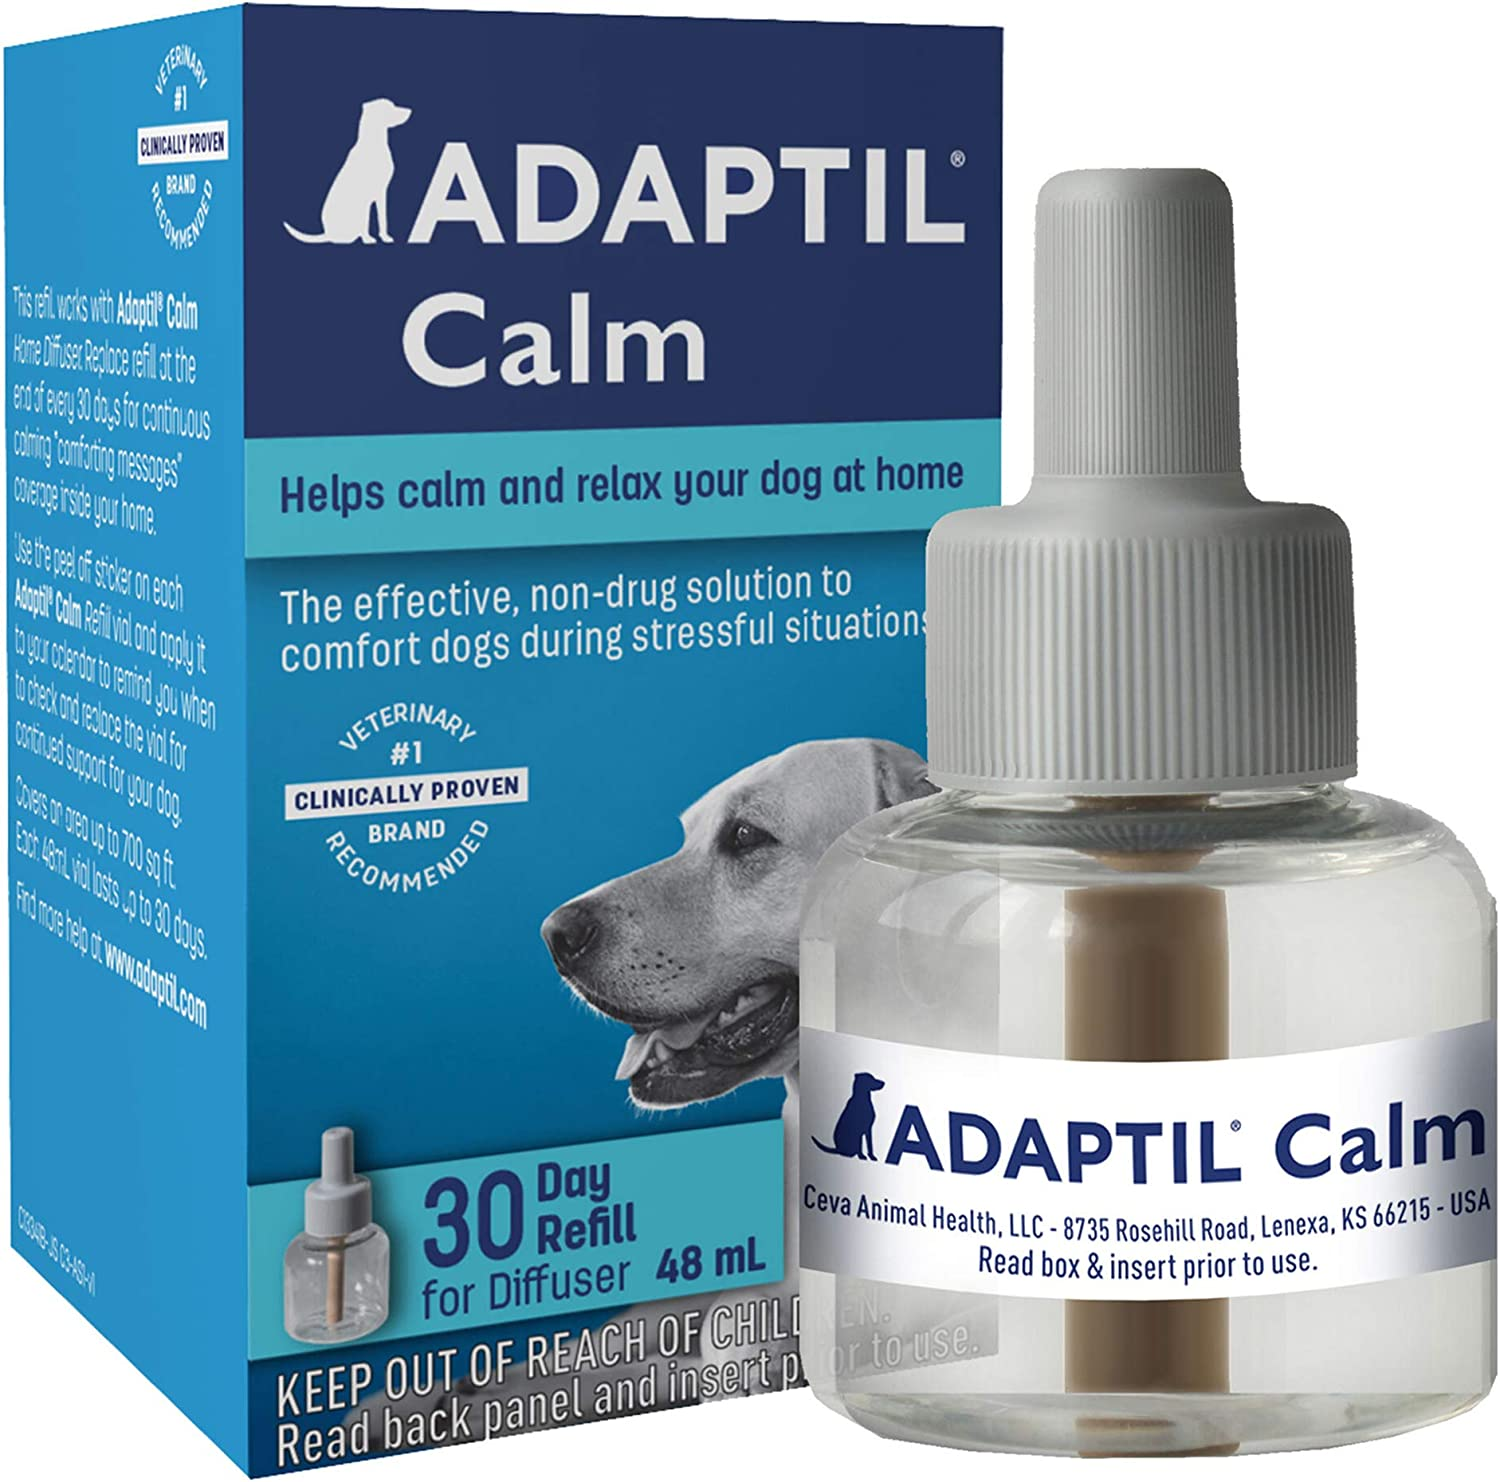 Adaptil 30 Day Diffuser Refill for Dogs